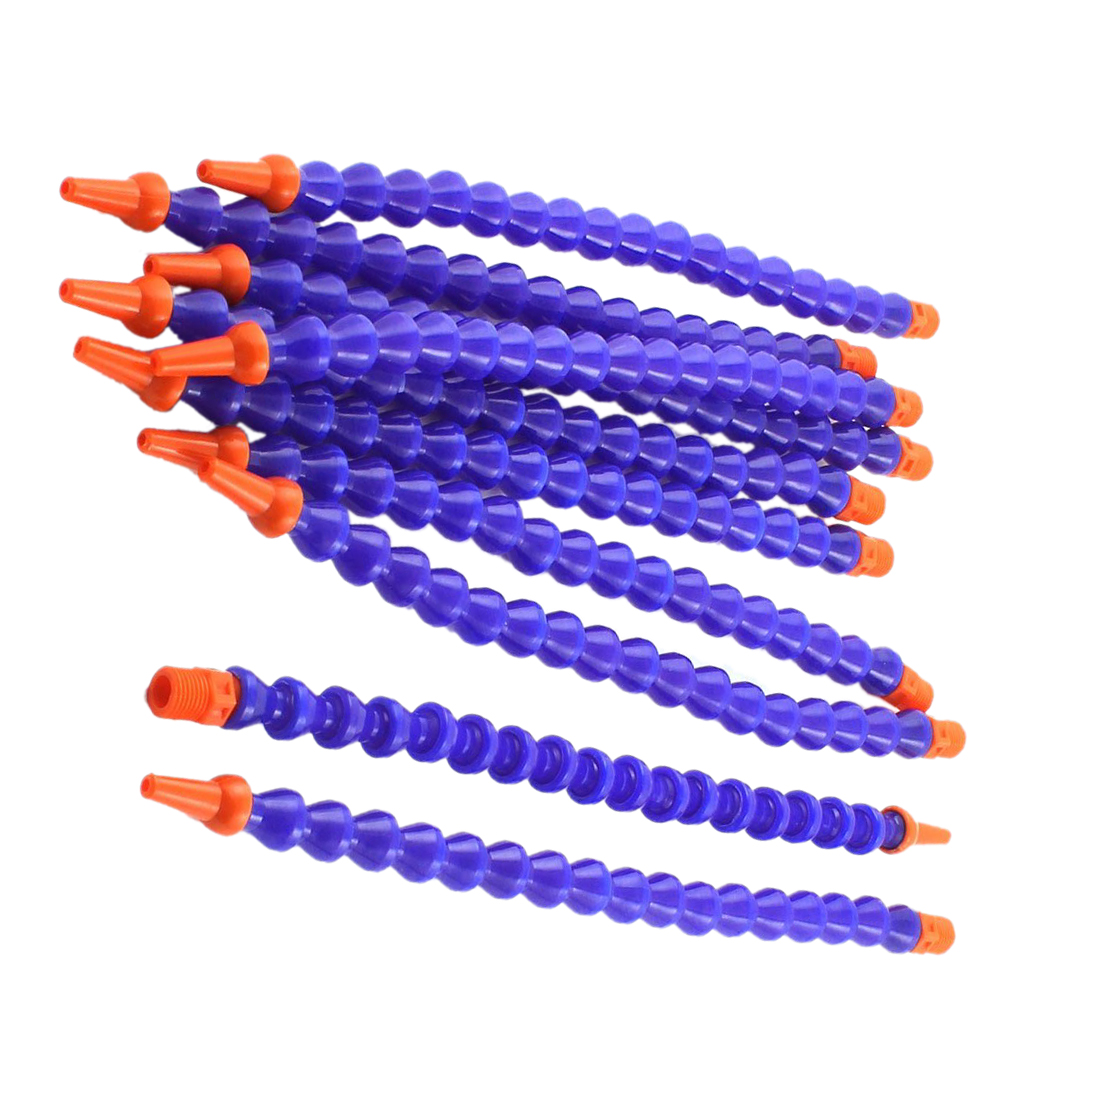 WSFS Hot 10PCS Round Nozzle 1/4PT Flexible Oil Coolant Pipe Hose Blue Orange For CNC Machine Lathe Milling Cooling Tube Retail